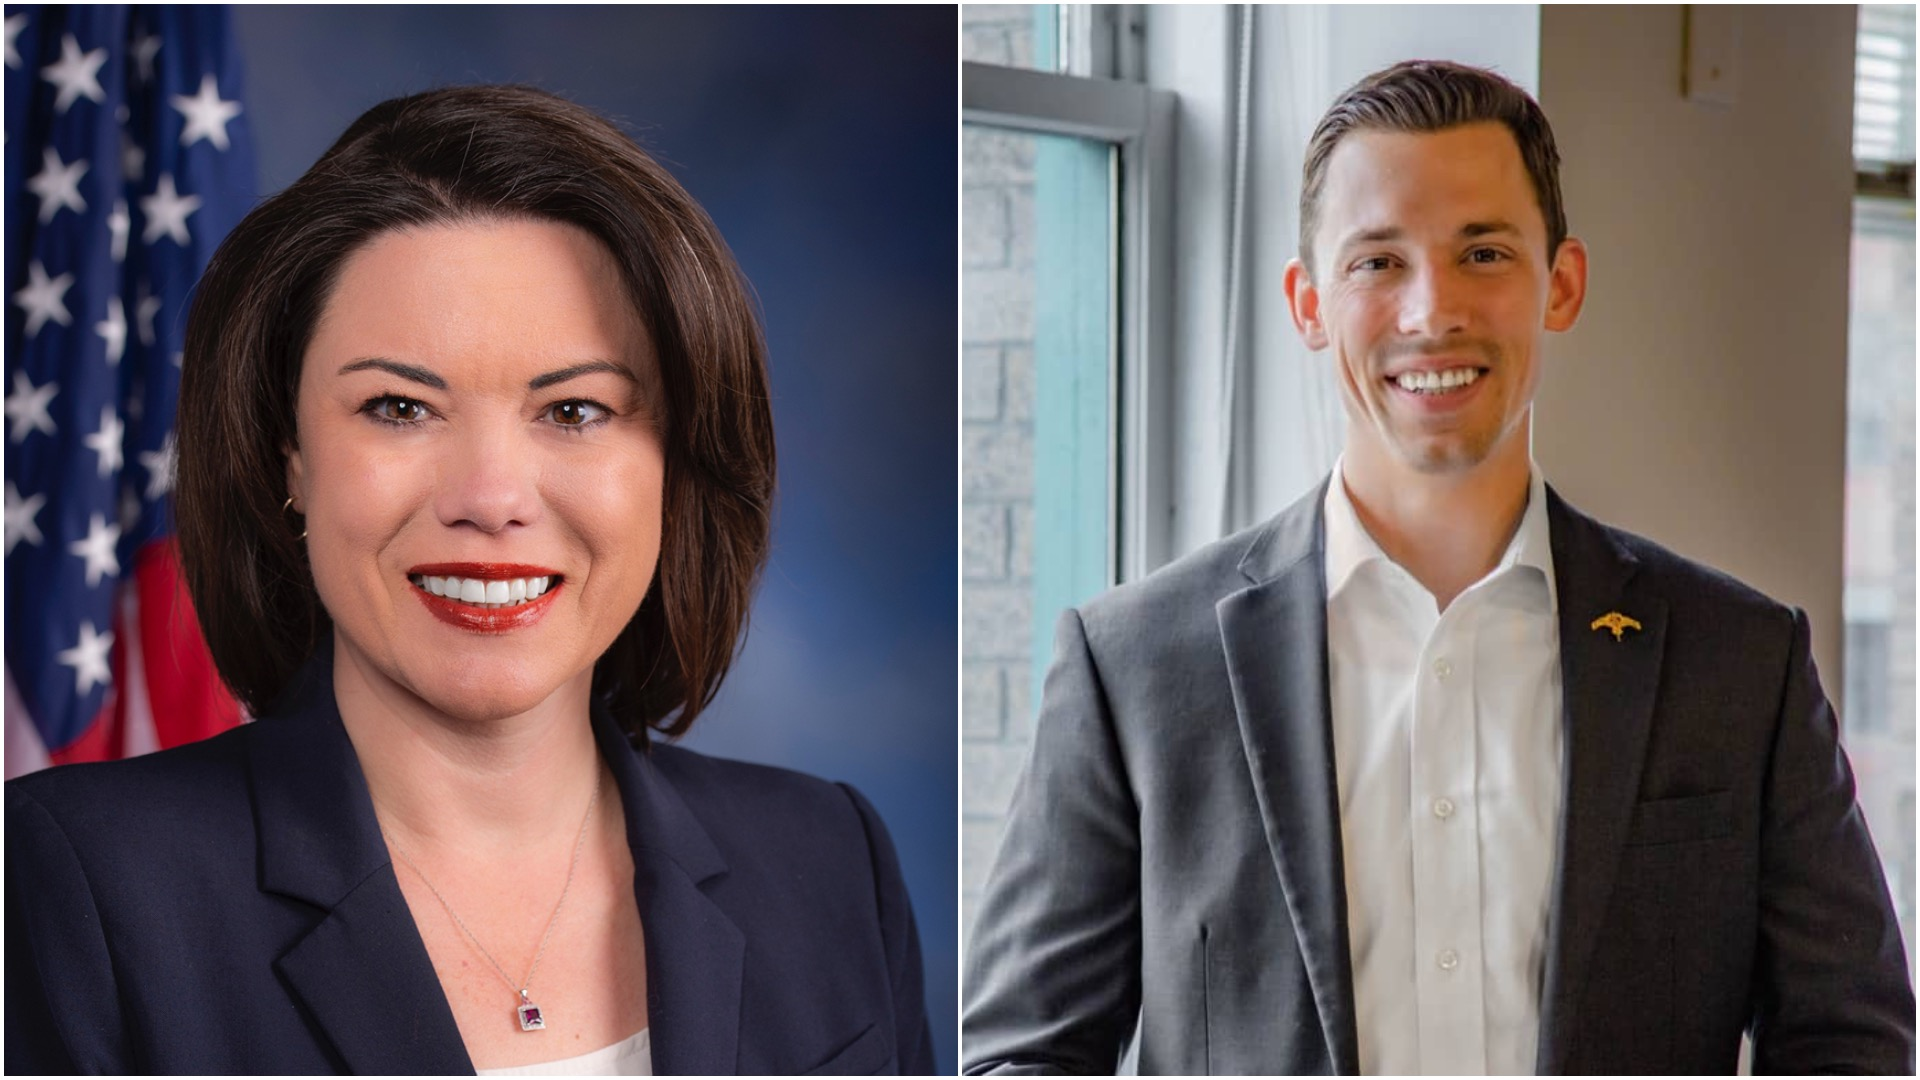 Appeals court will hear arguments, but not delay race in 2nd Congressional District